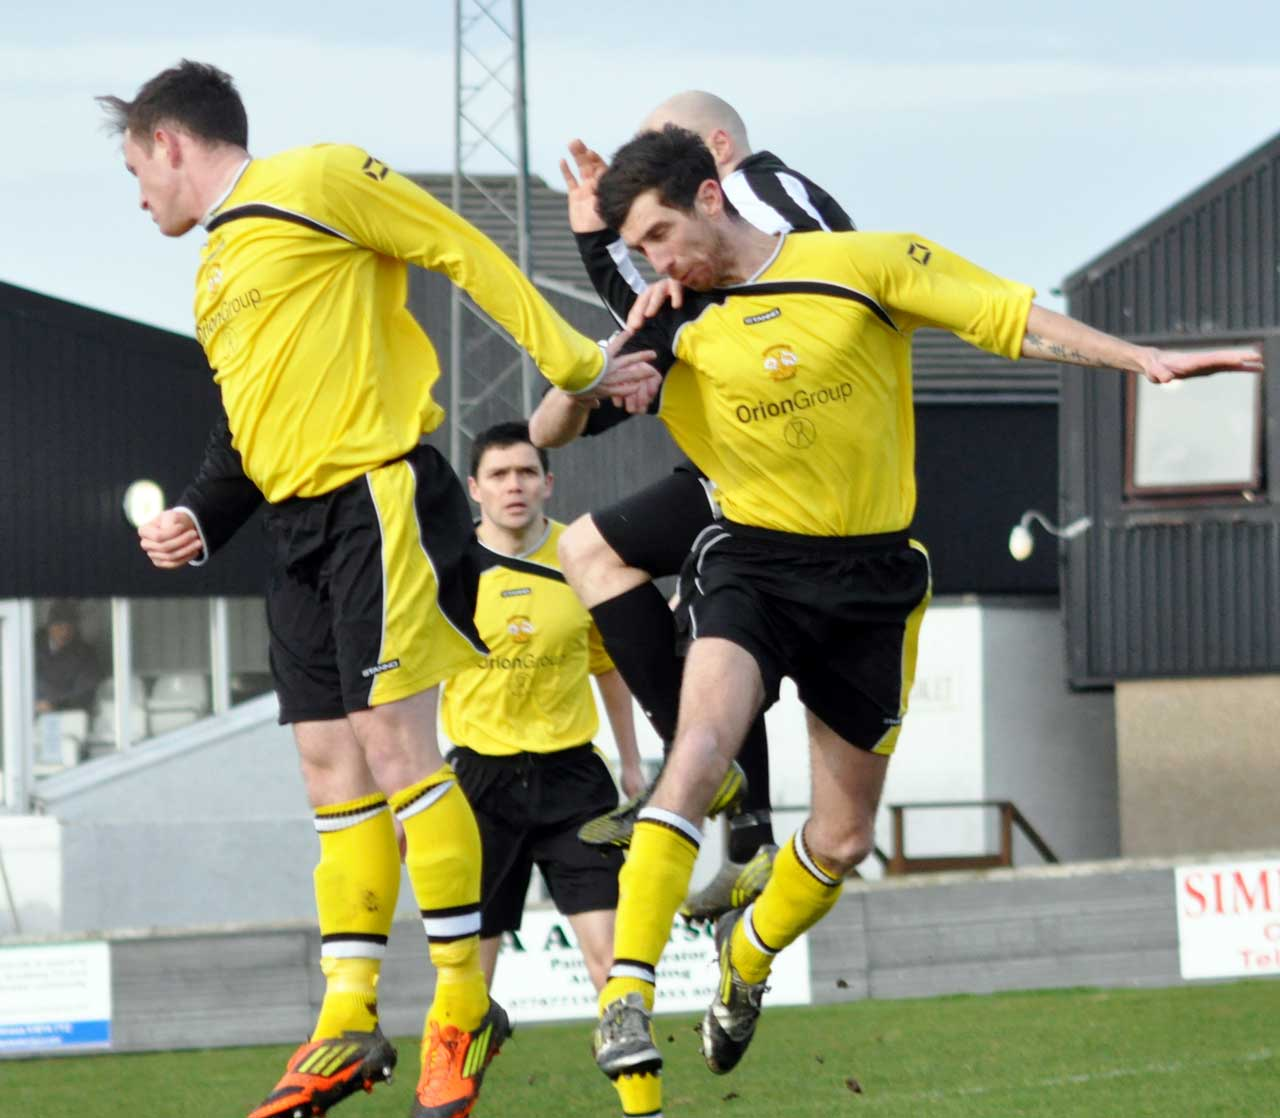 Photo: Wick Academy 1 Clachnacuddin 1